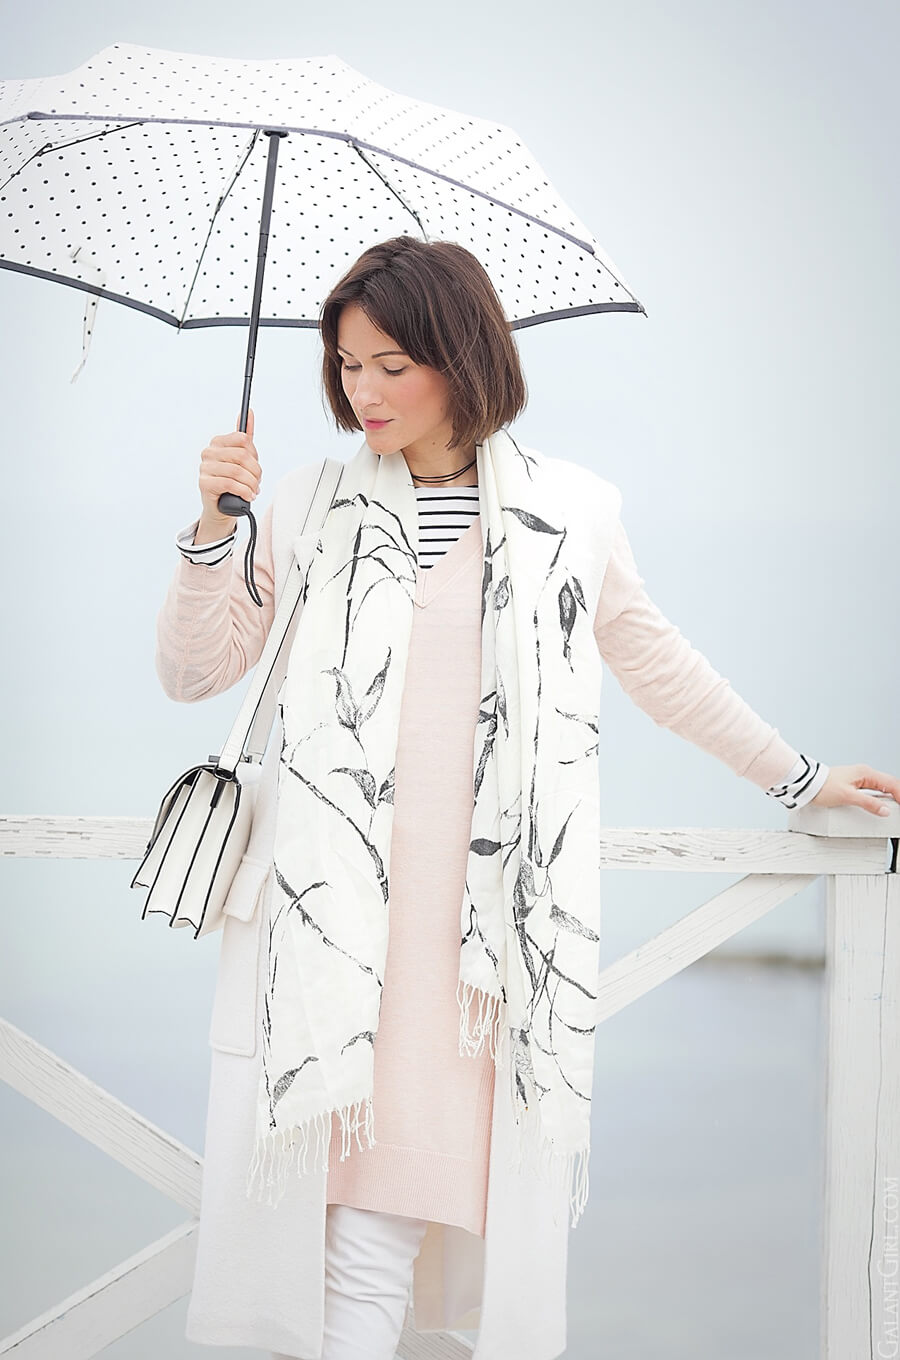 rainy+weather+outfit_umbrella-look_white+colors+outfit